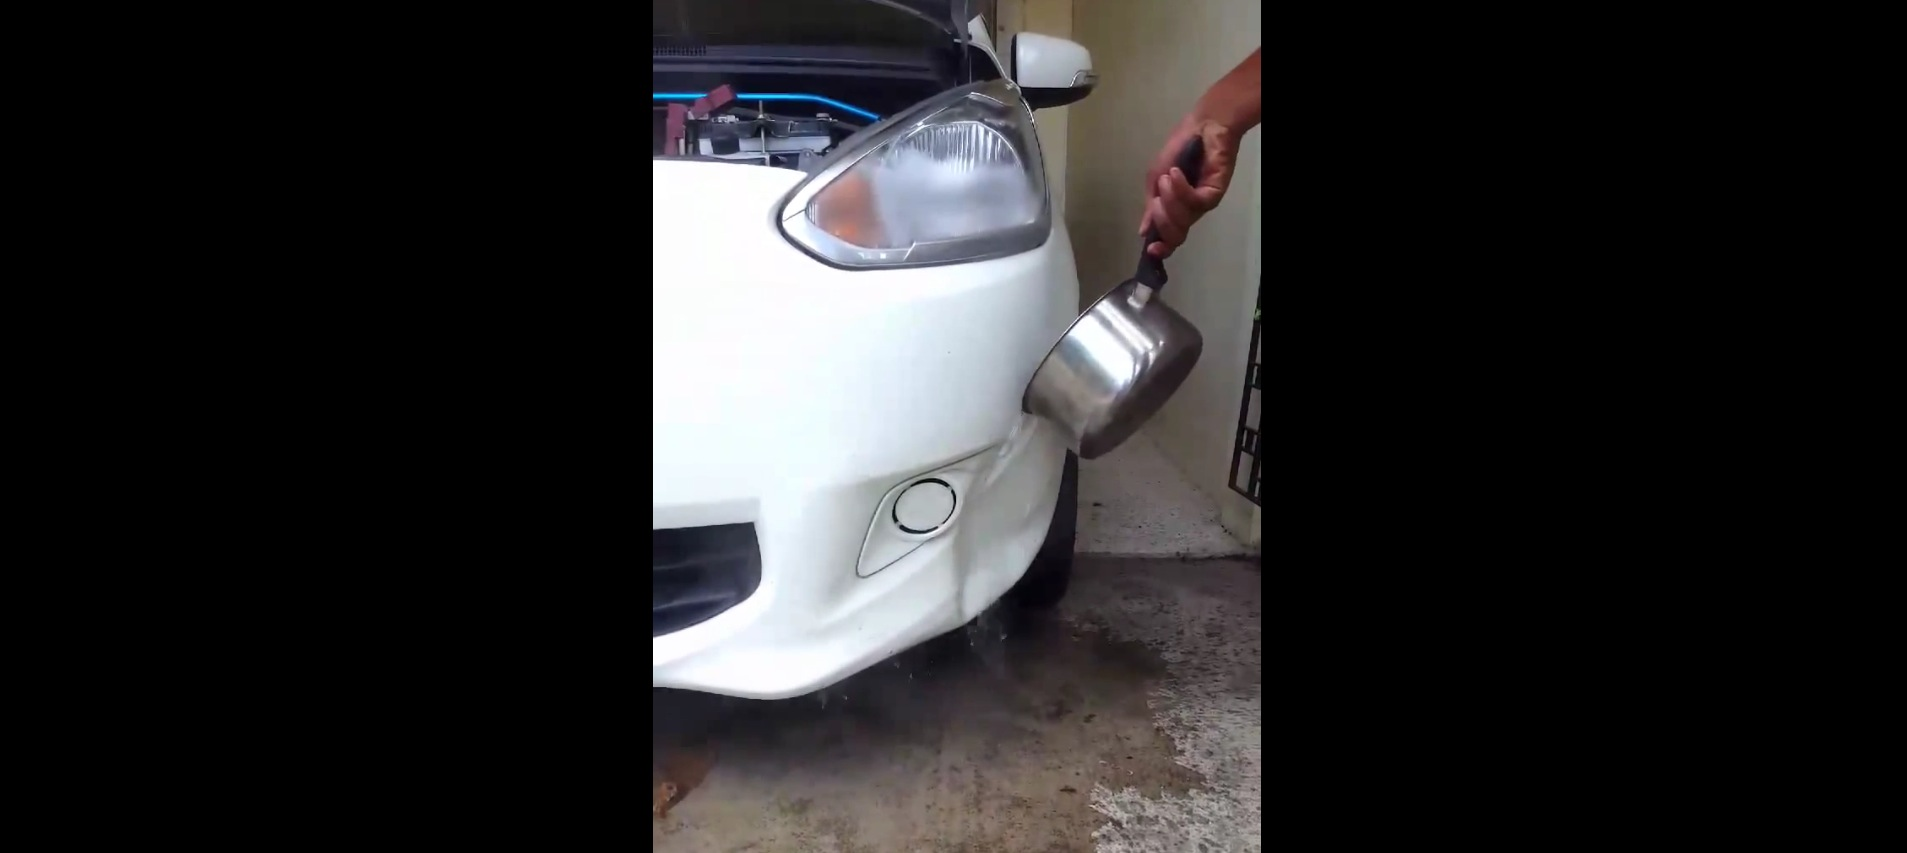 car-bumper-dent-fixed-with-boiling-water-is-amazing-video-100026_1